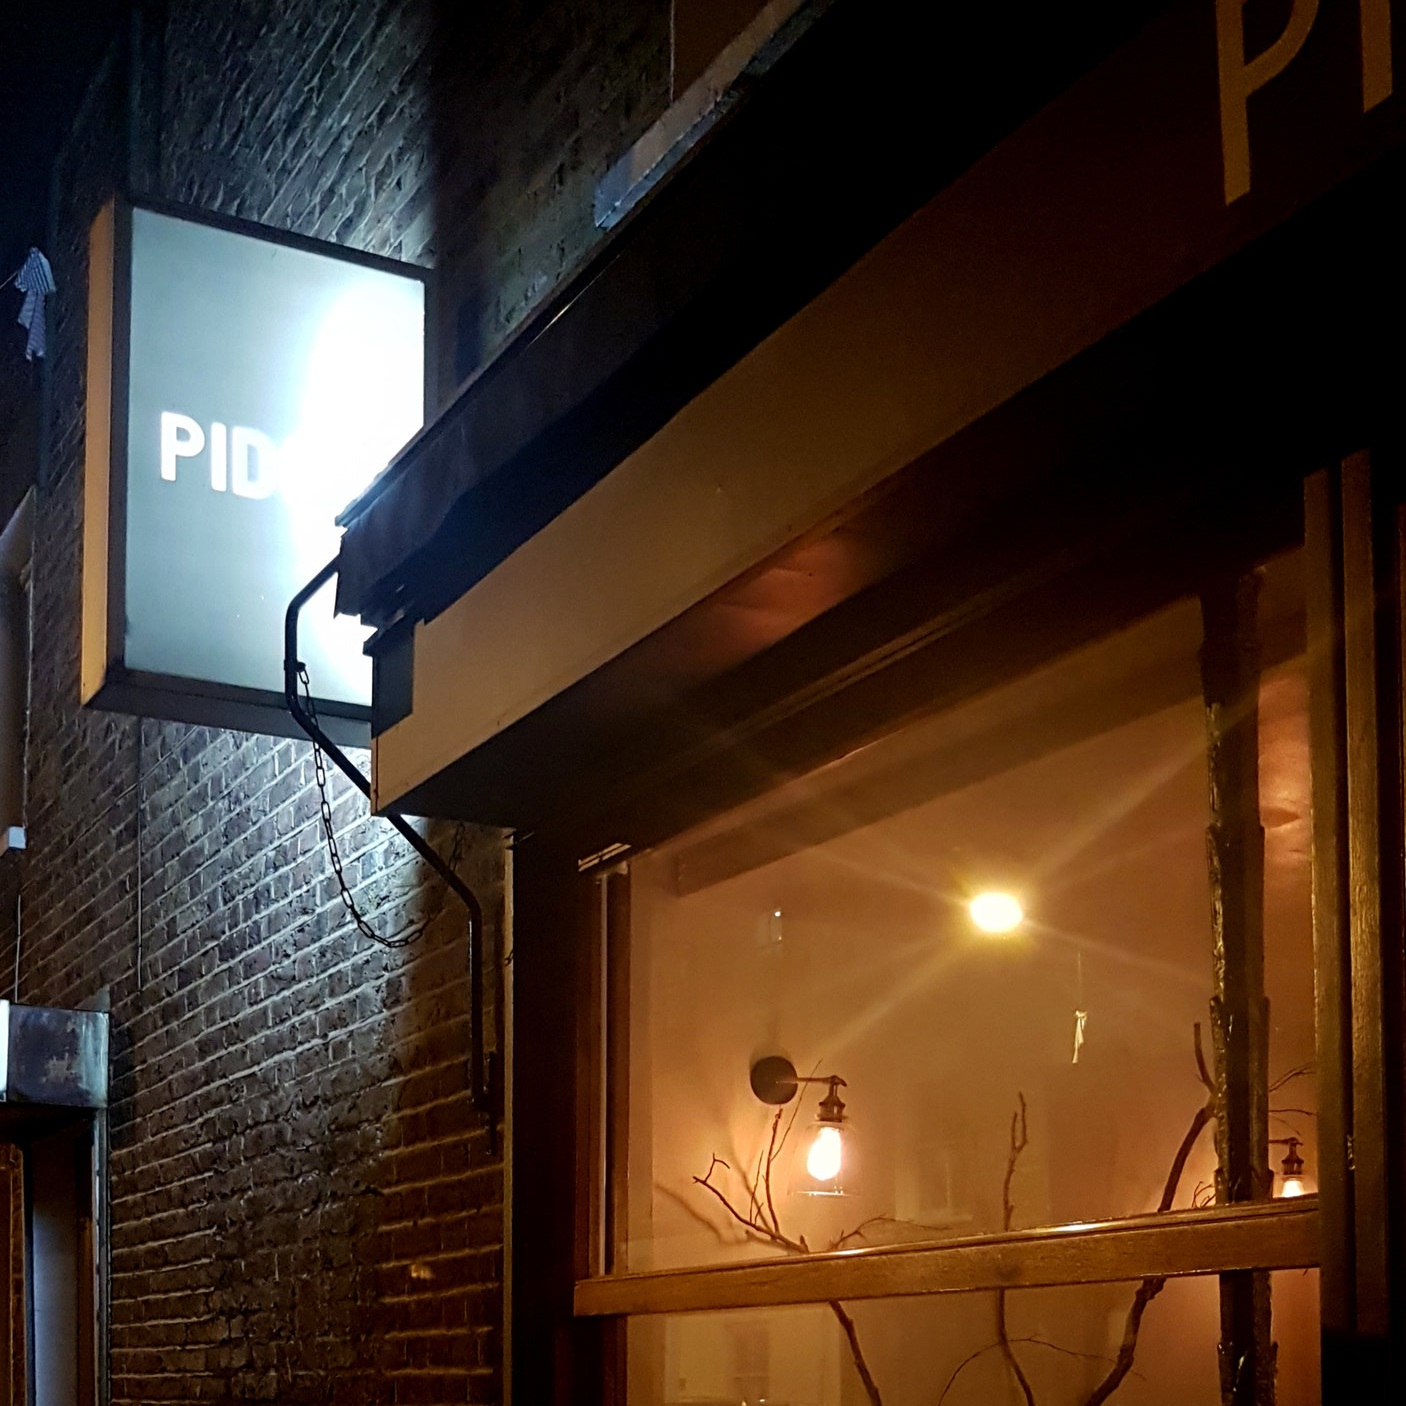 One of my new foodie favourites this year -    Pidgin    in Hackney